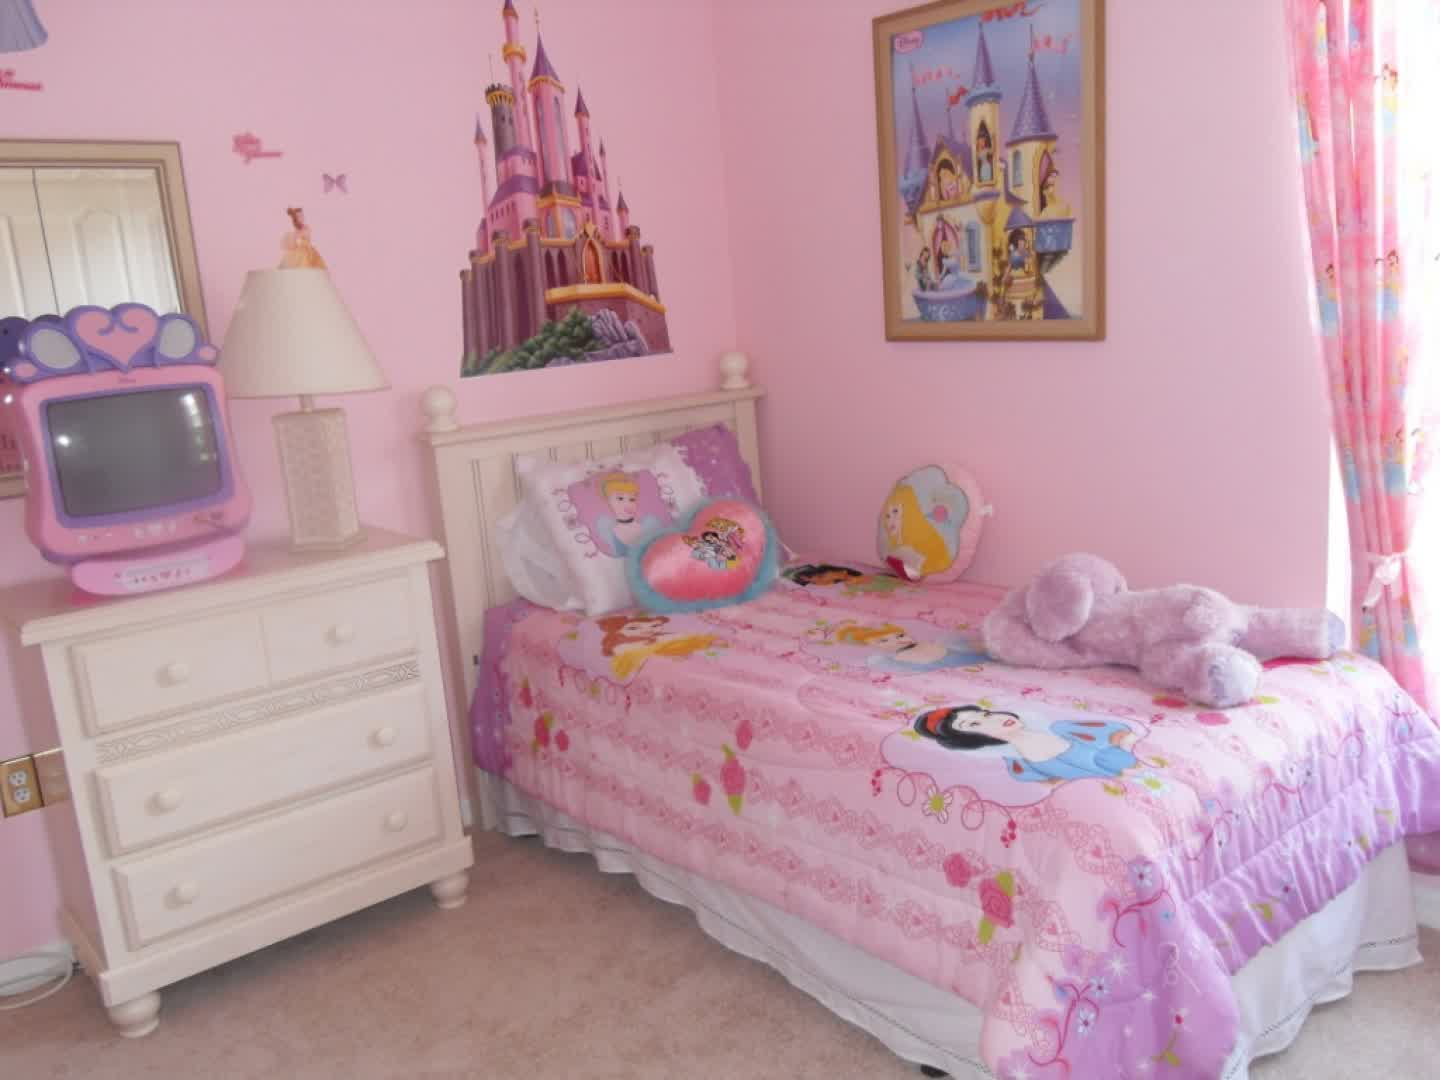 Chic Pink Bedroom Ideas for Girls  A Truly Lovely Look  Ideas 4 Homes